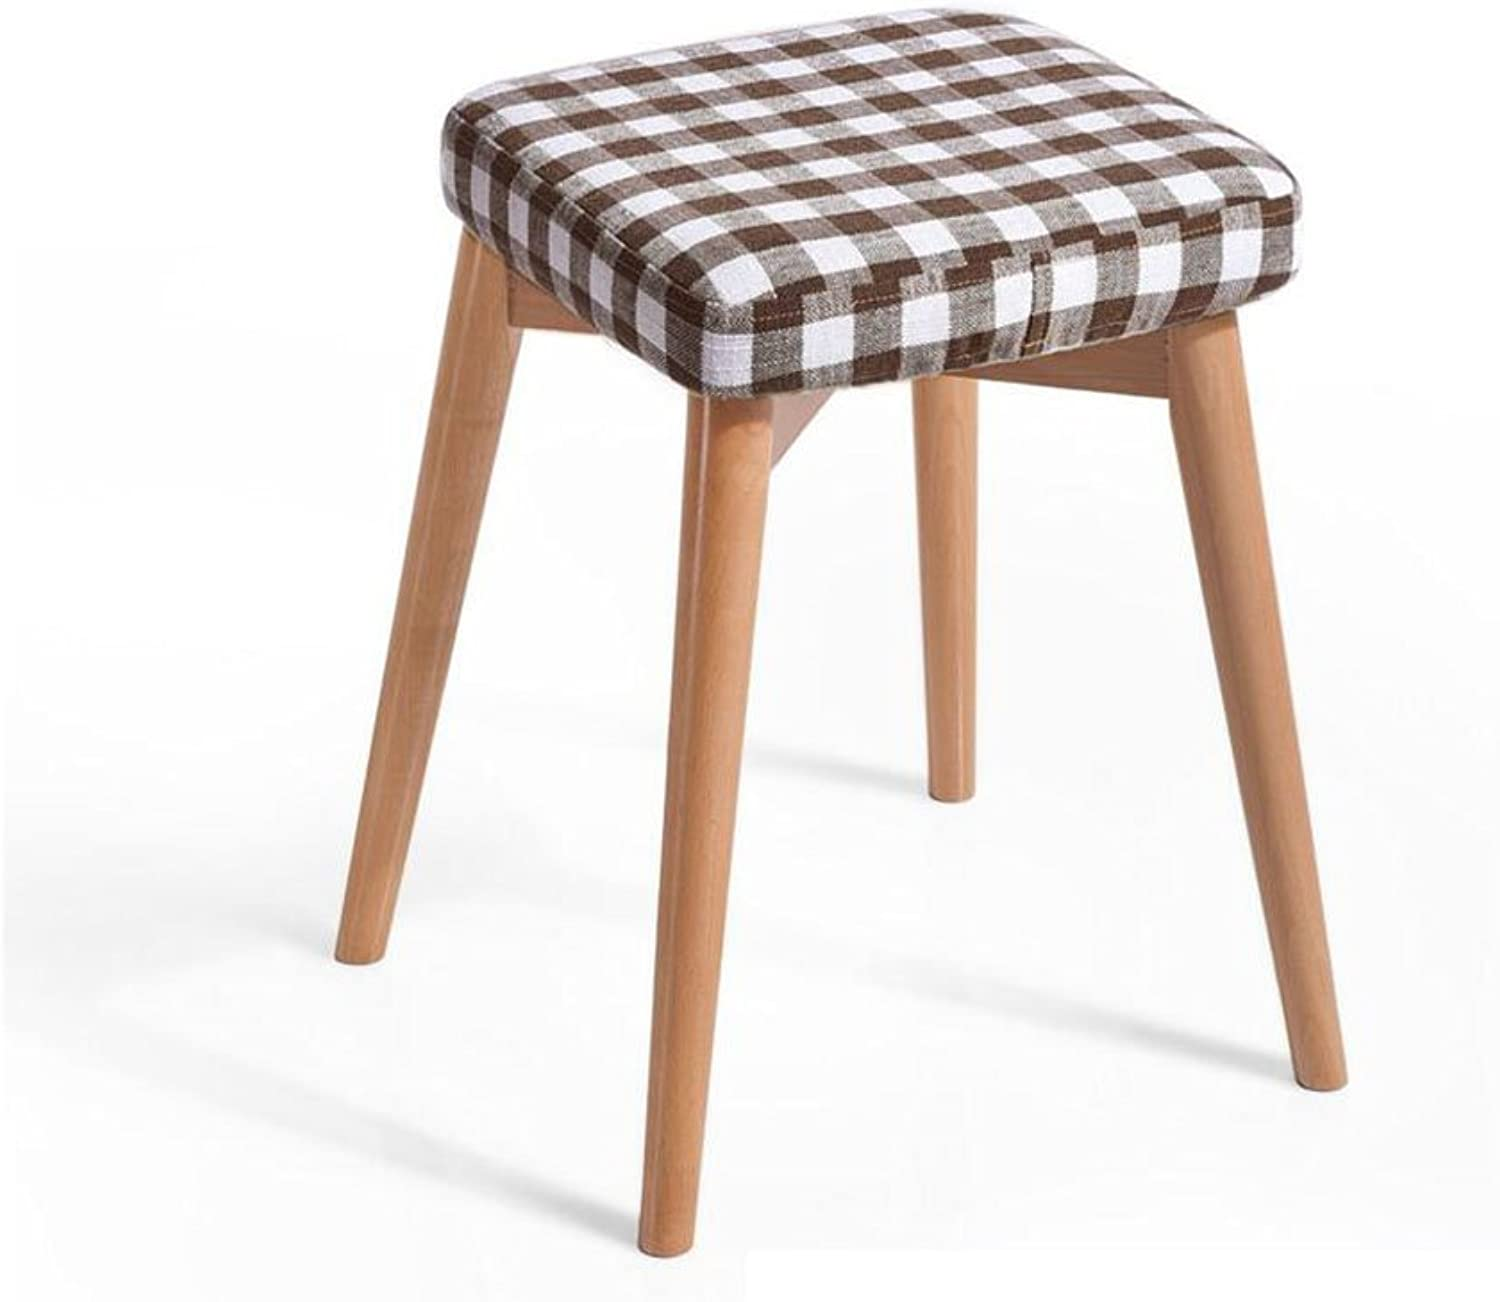 CJC Wooden Stool Household Removable seat Cover Solid Wood Home Office Furniture Kitchen (color   1)